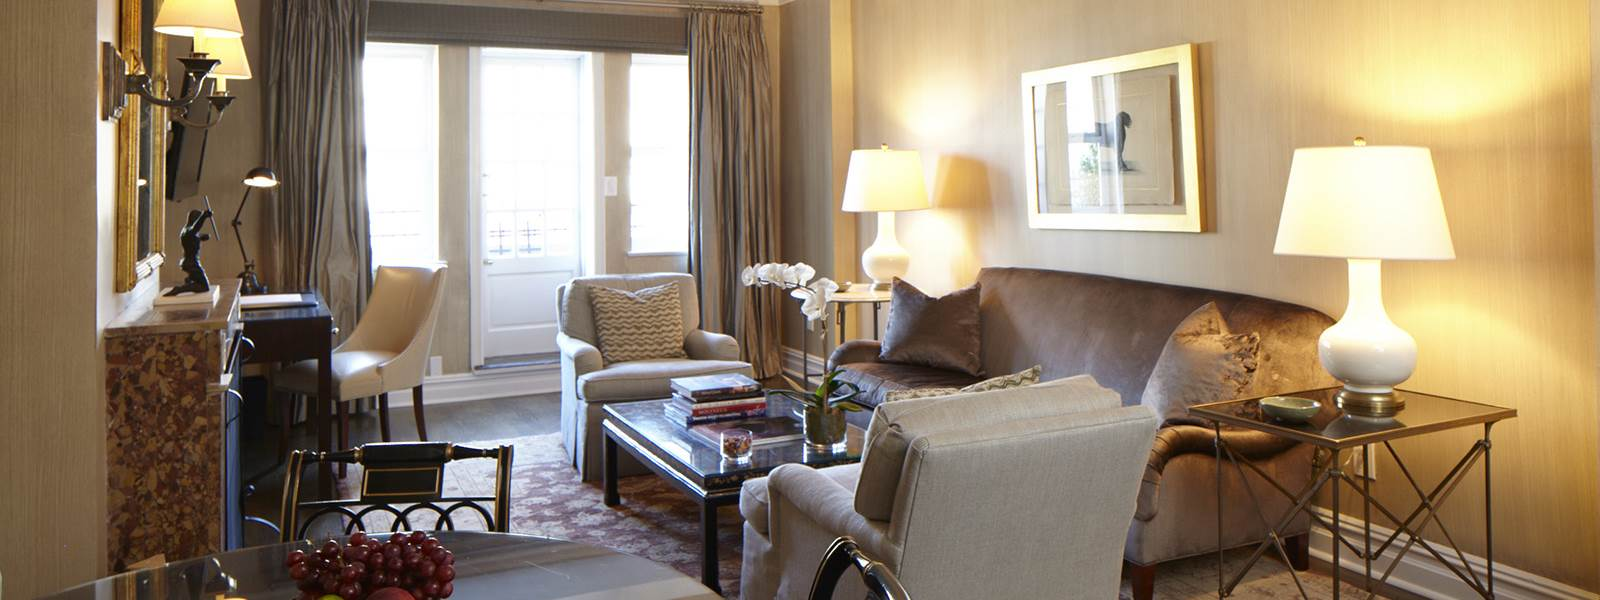 Two bedroom suite new york hotels with 2 bedroom suites - Hotel suites new york city 2 bedrooms ...